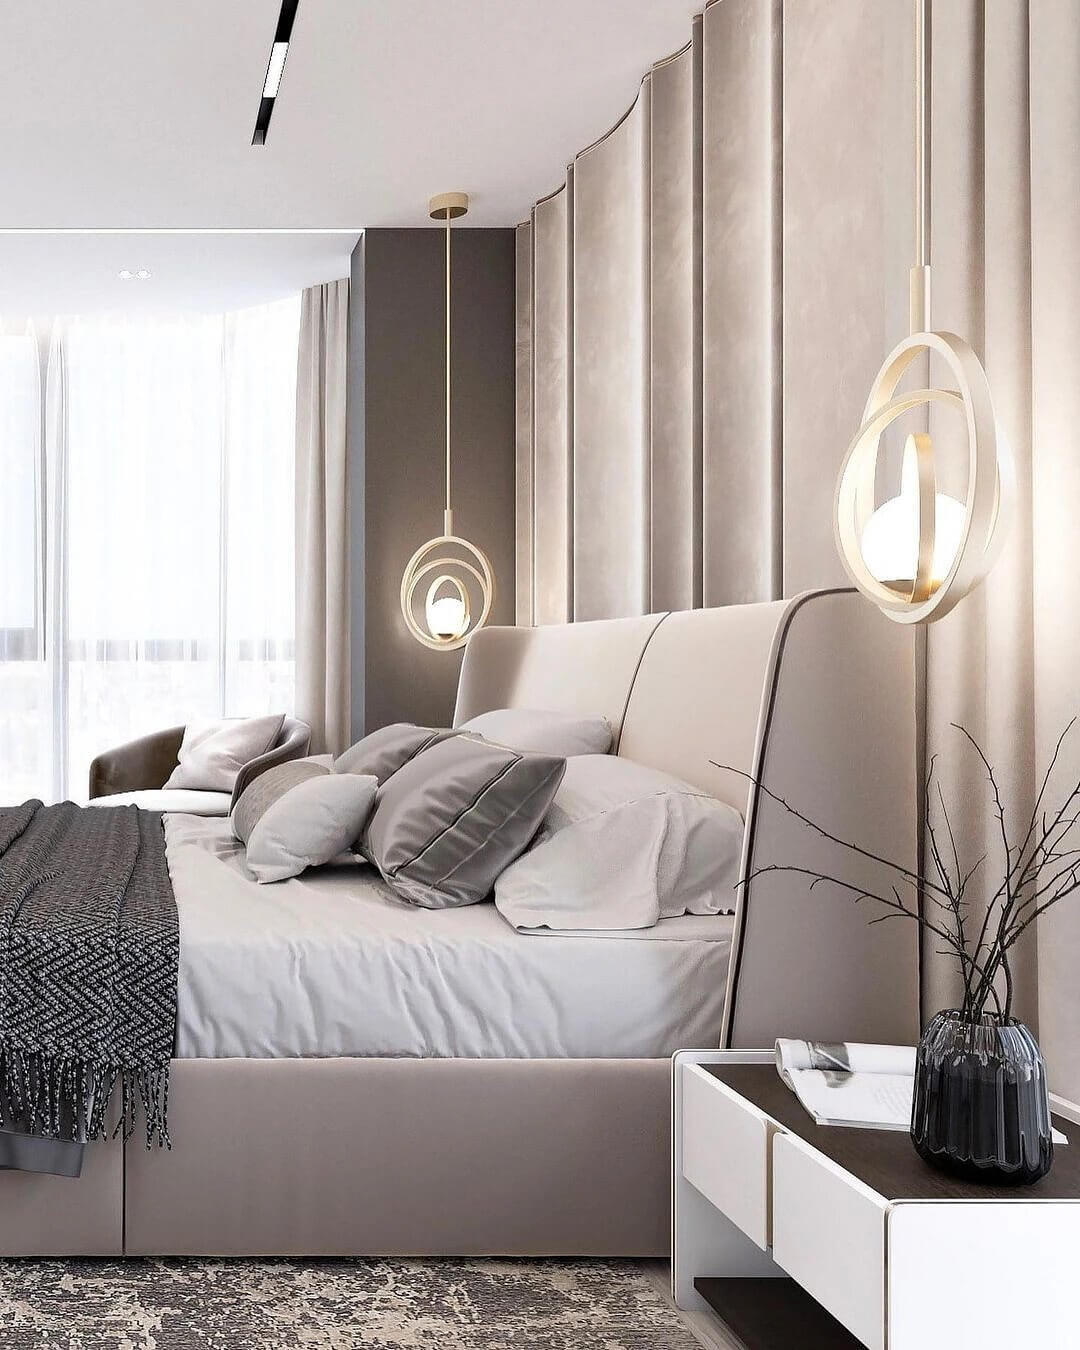 19. Interior in creamy shades with sophisticated textiles